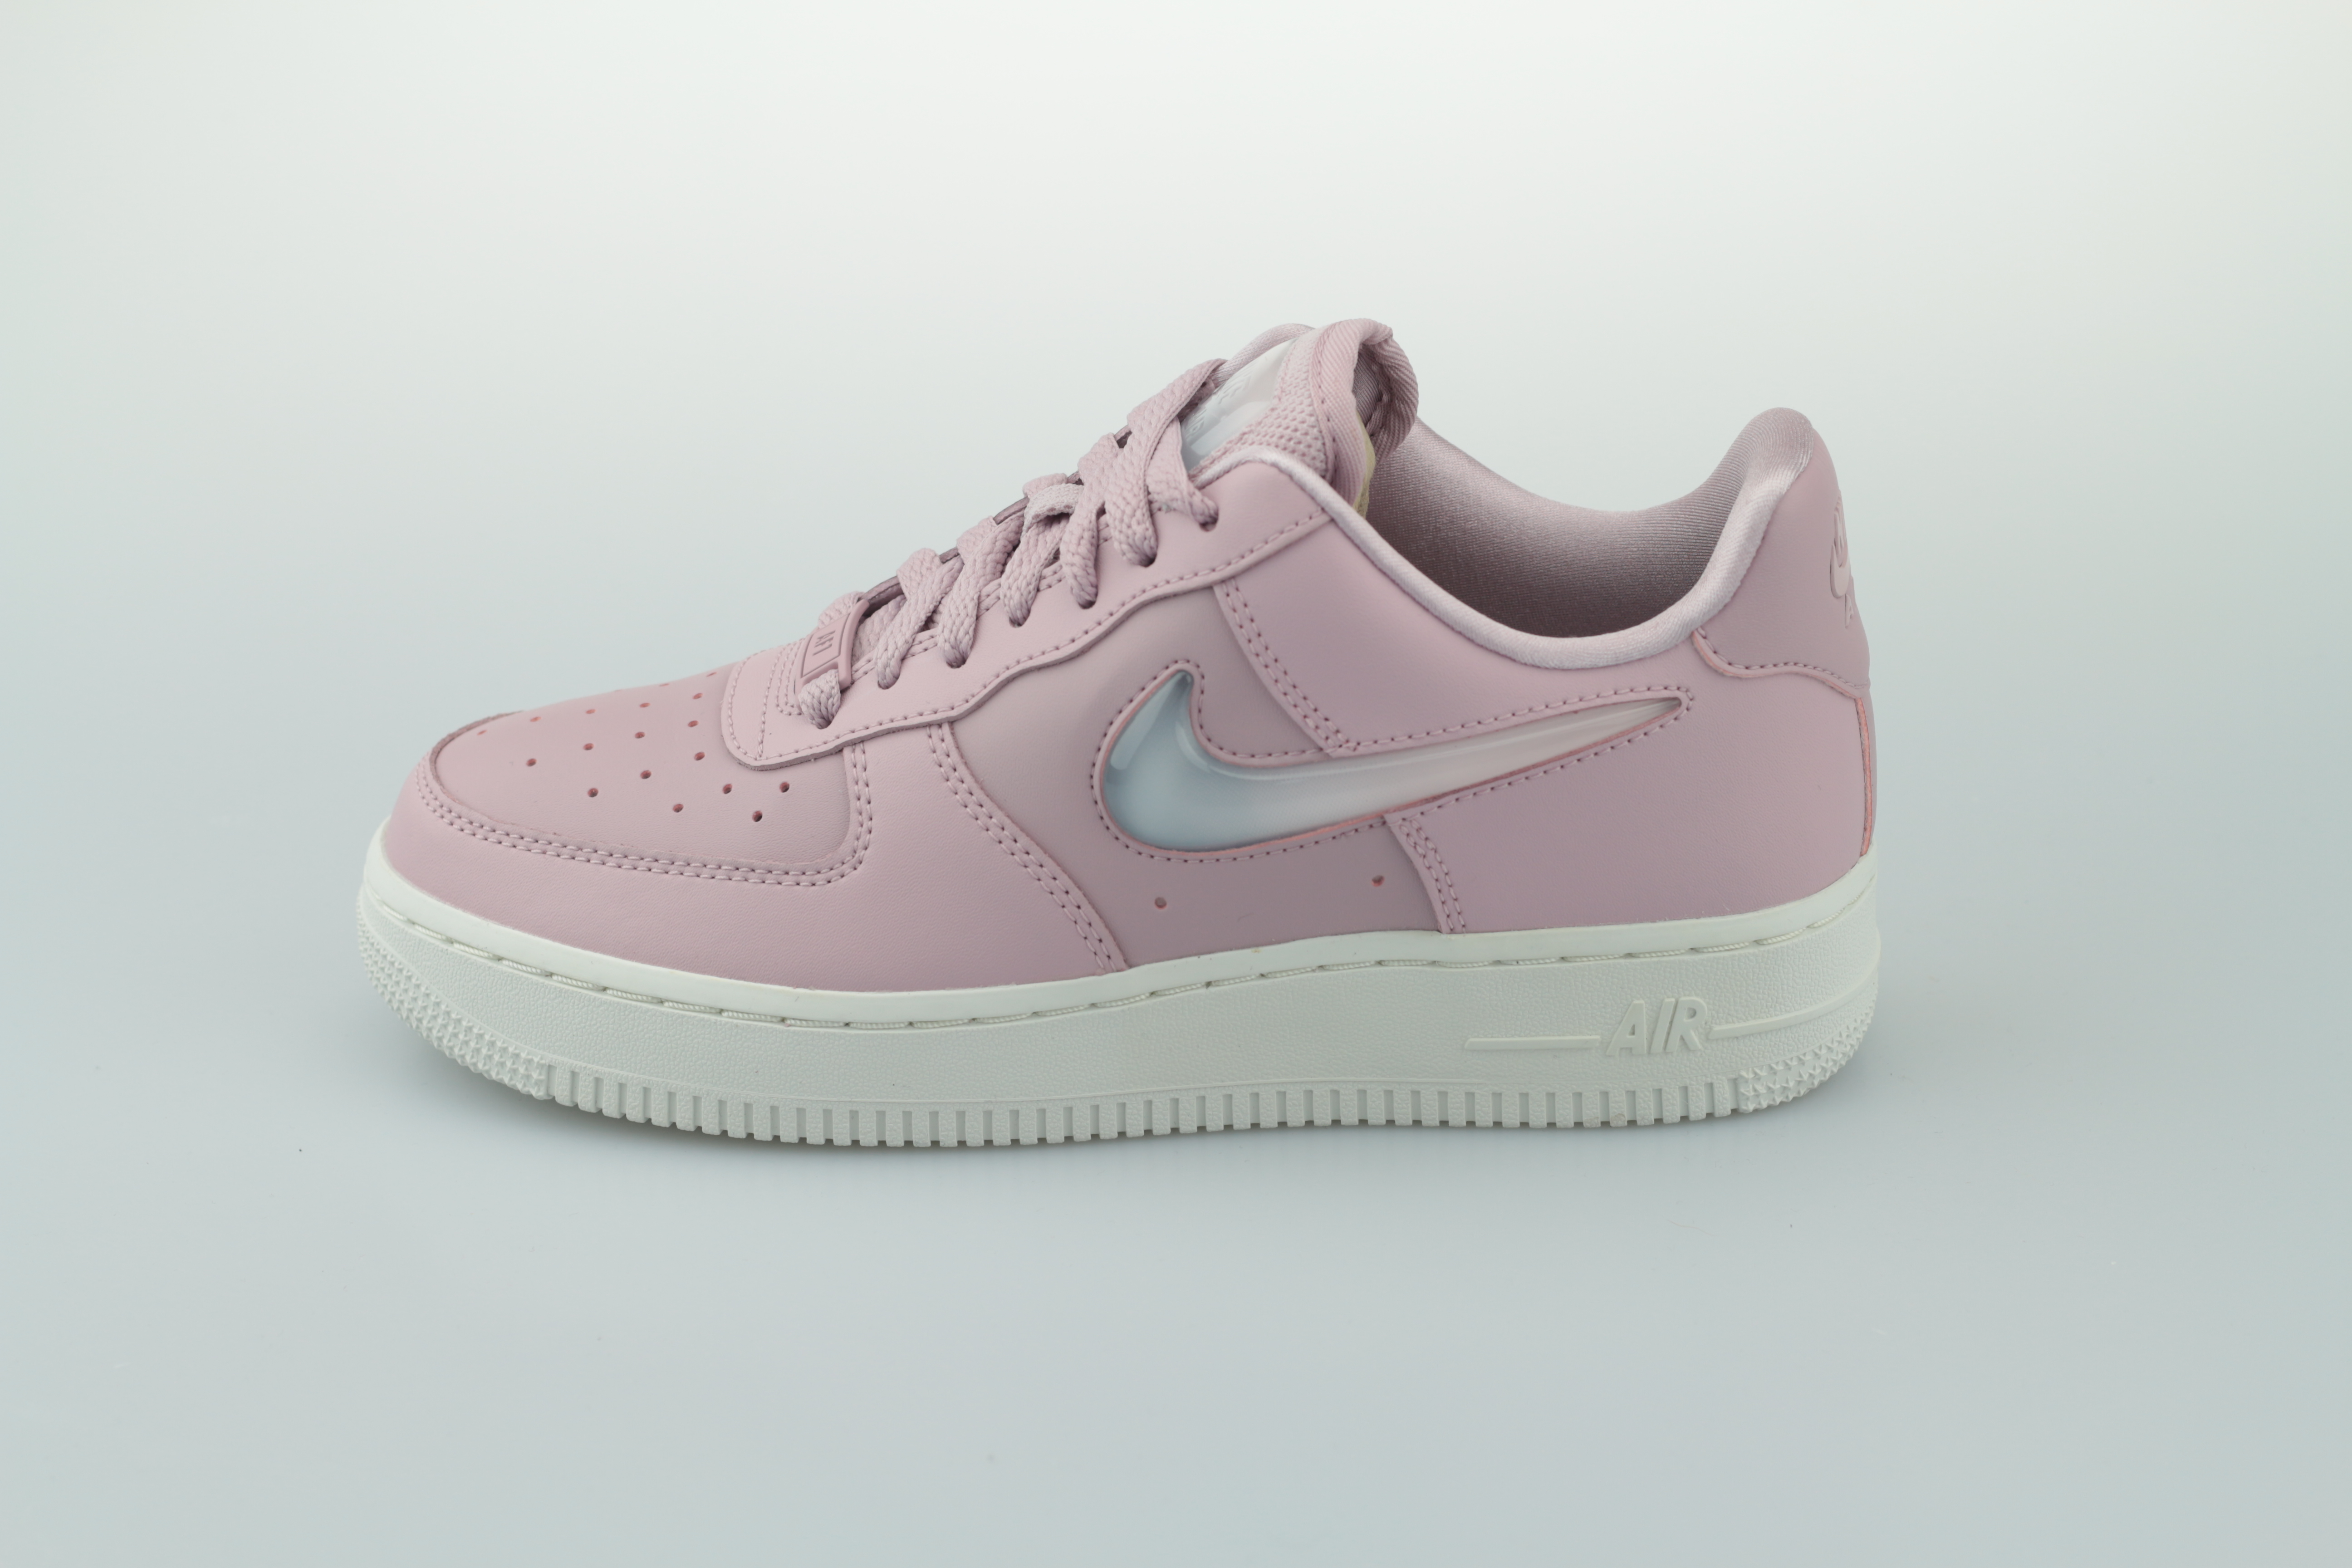 innovative design 9e4b3 f4108 Vorschau  Wmns Air Force 1  07 SE Premium (Plum Chalk   Obsidian Mist ...